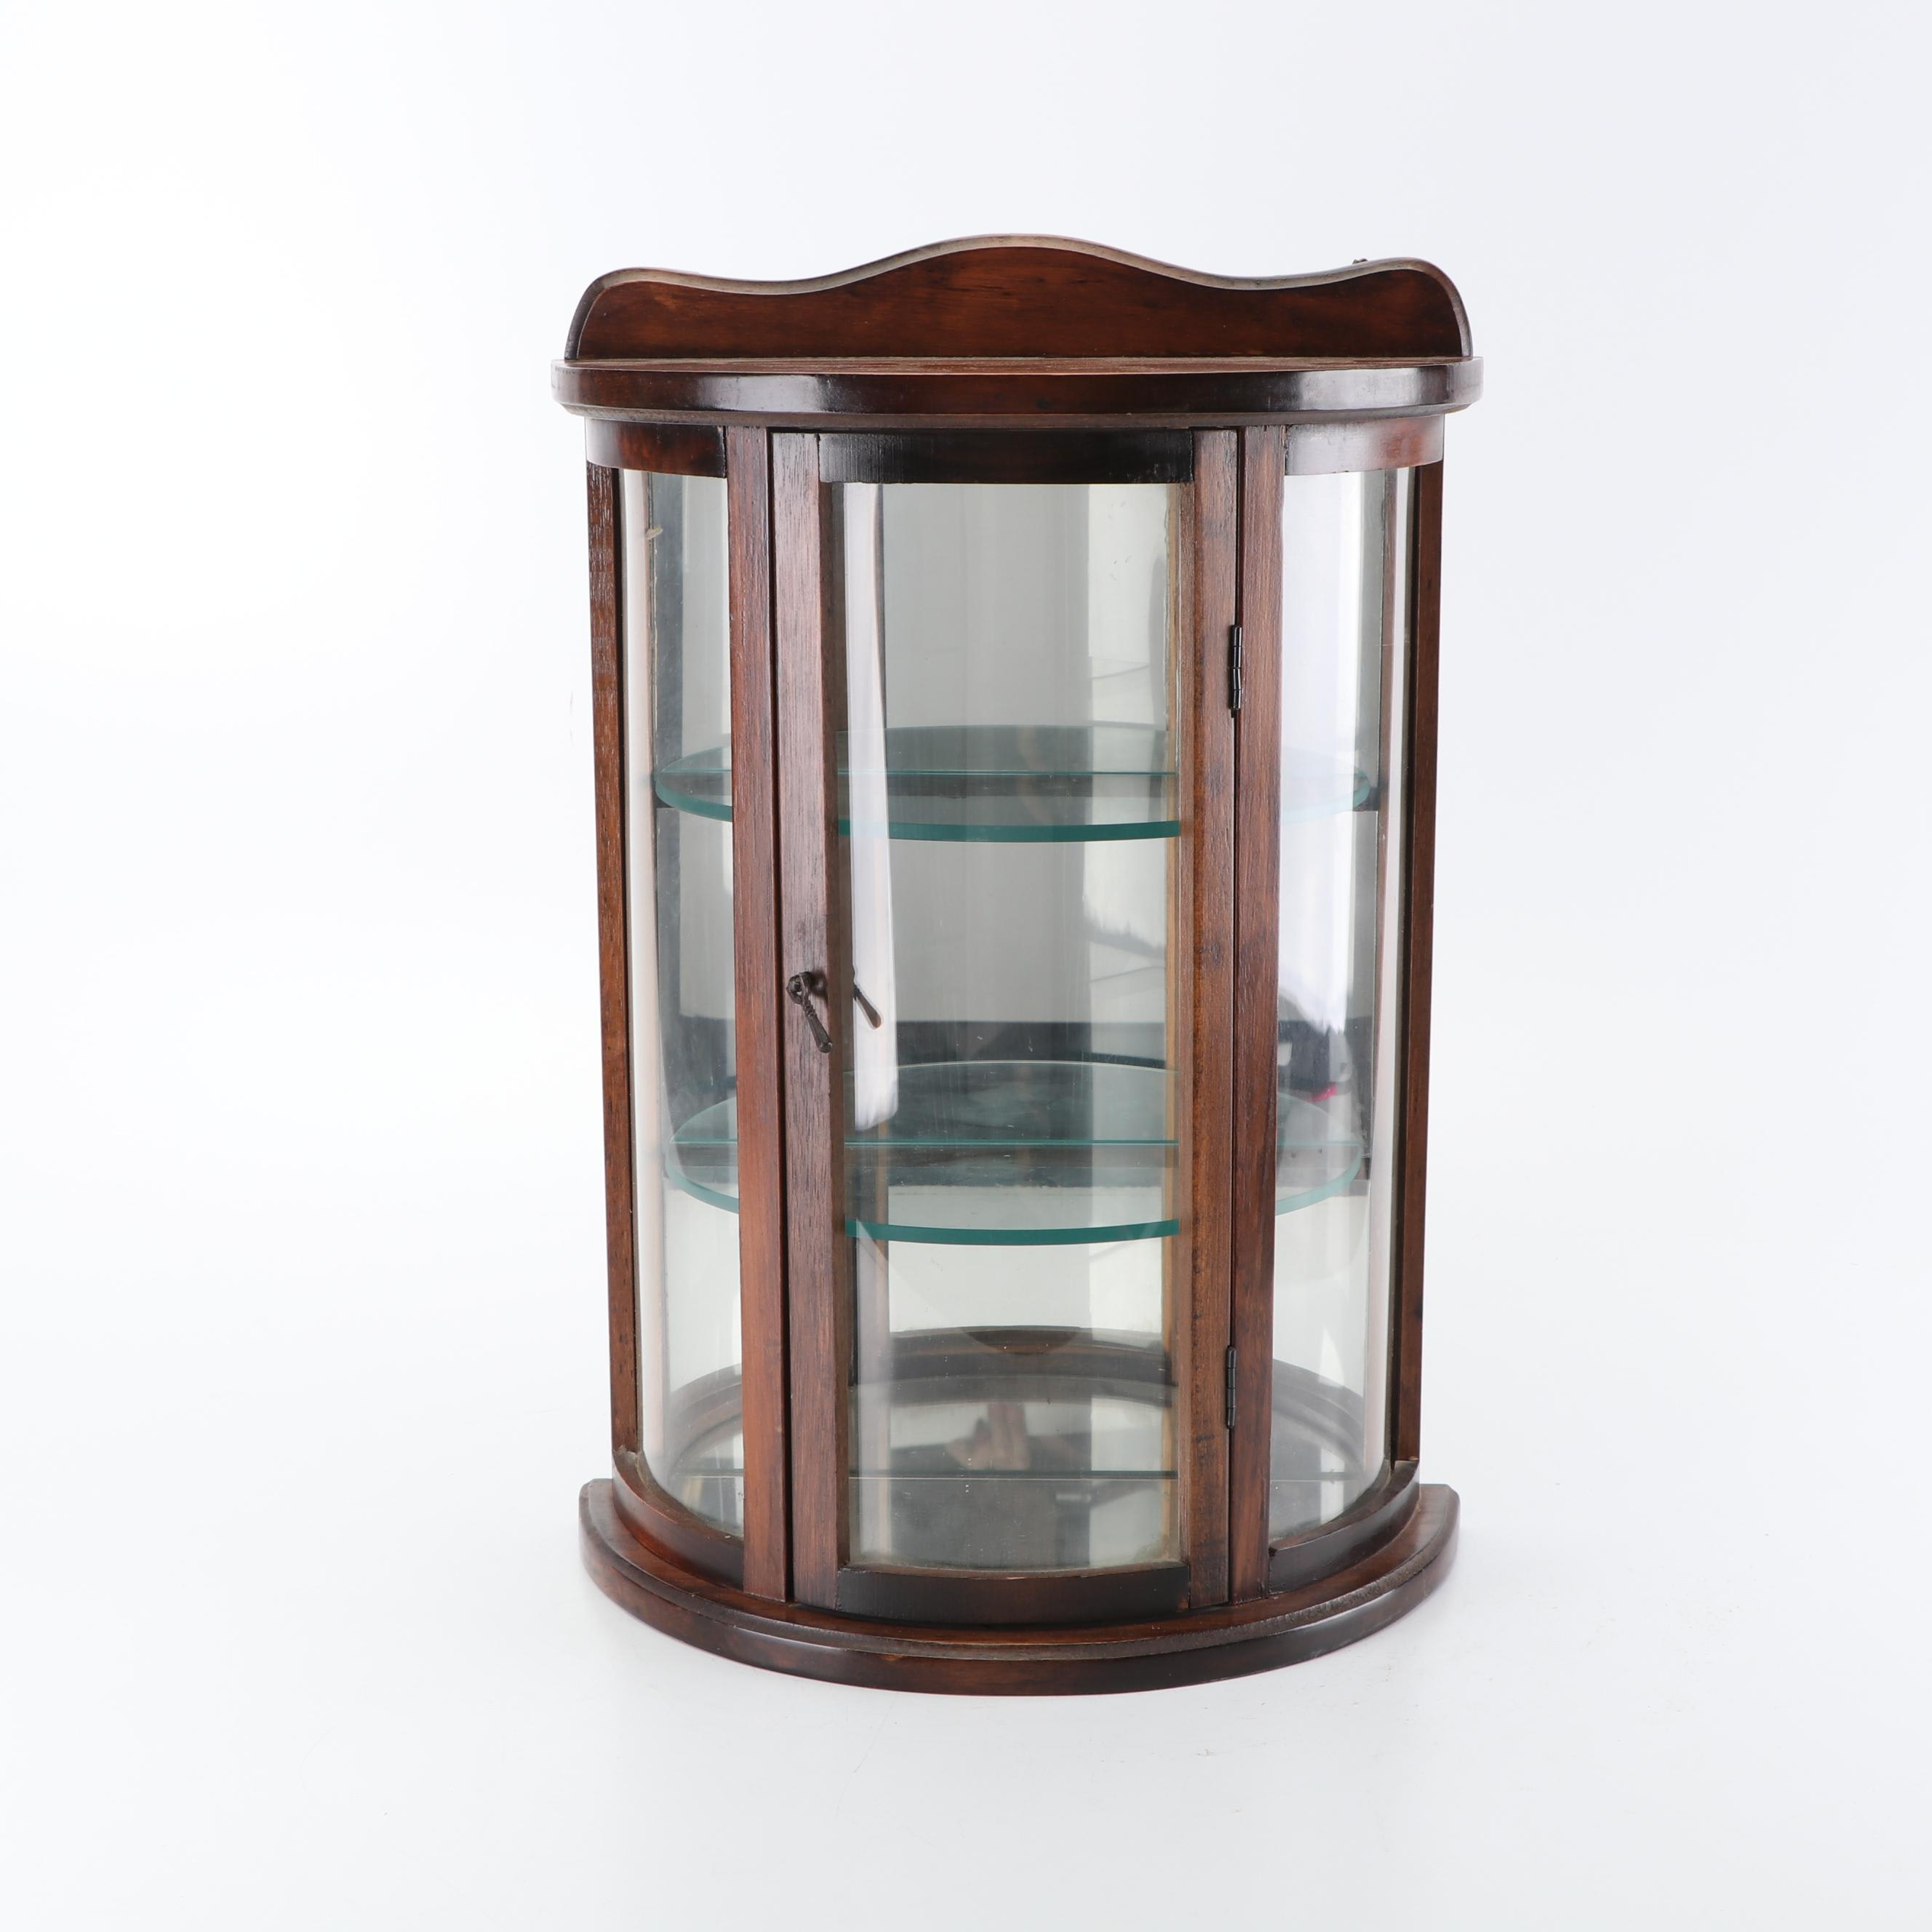 Wood and Glass Wall Mount Curio Cabinet, Mid/Late 20th Century